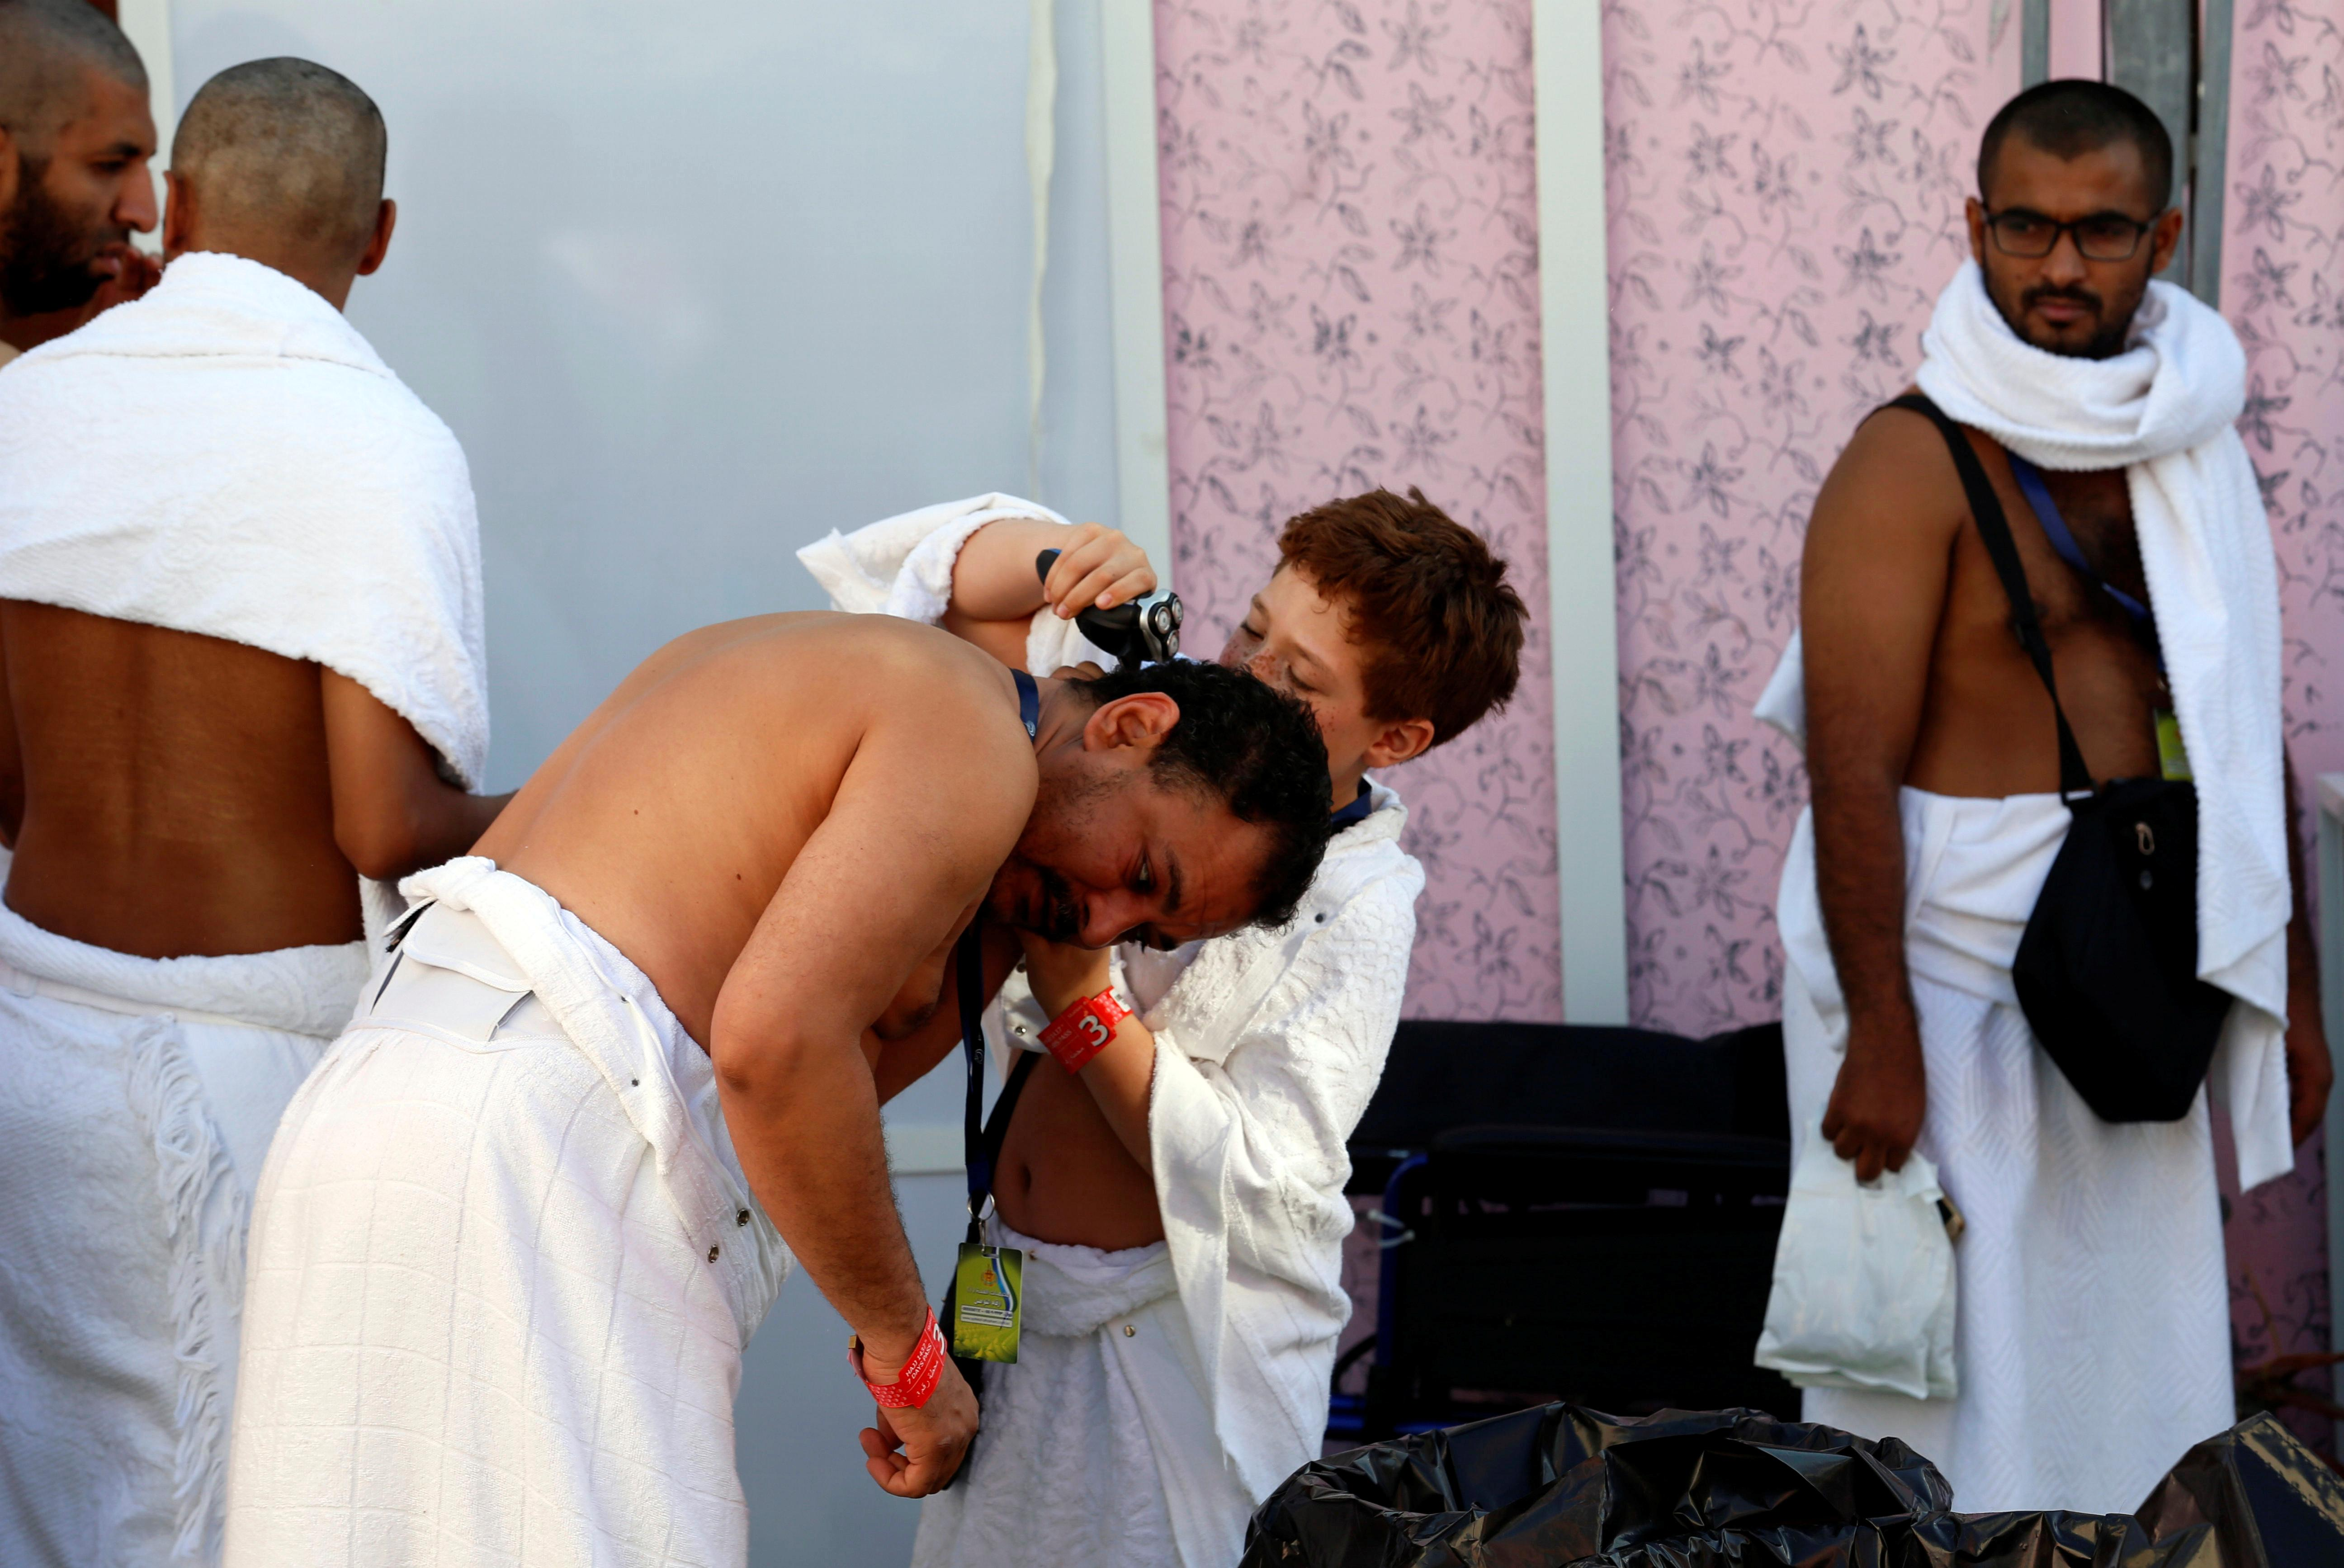 Muslim pilgrims shave their heads after they cast stones at pillars symbolizing Satan, during the annual Hajj pilgrimage on the first day of Eid al-Adha in Mina, near the holy city of Mecca, Saudi Arabia Sept. 12, 2016. Photo: REUTERS/Ahmed Jadallah